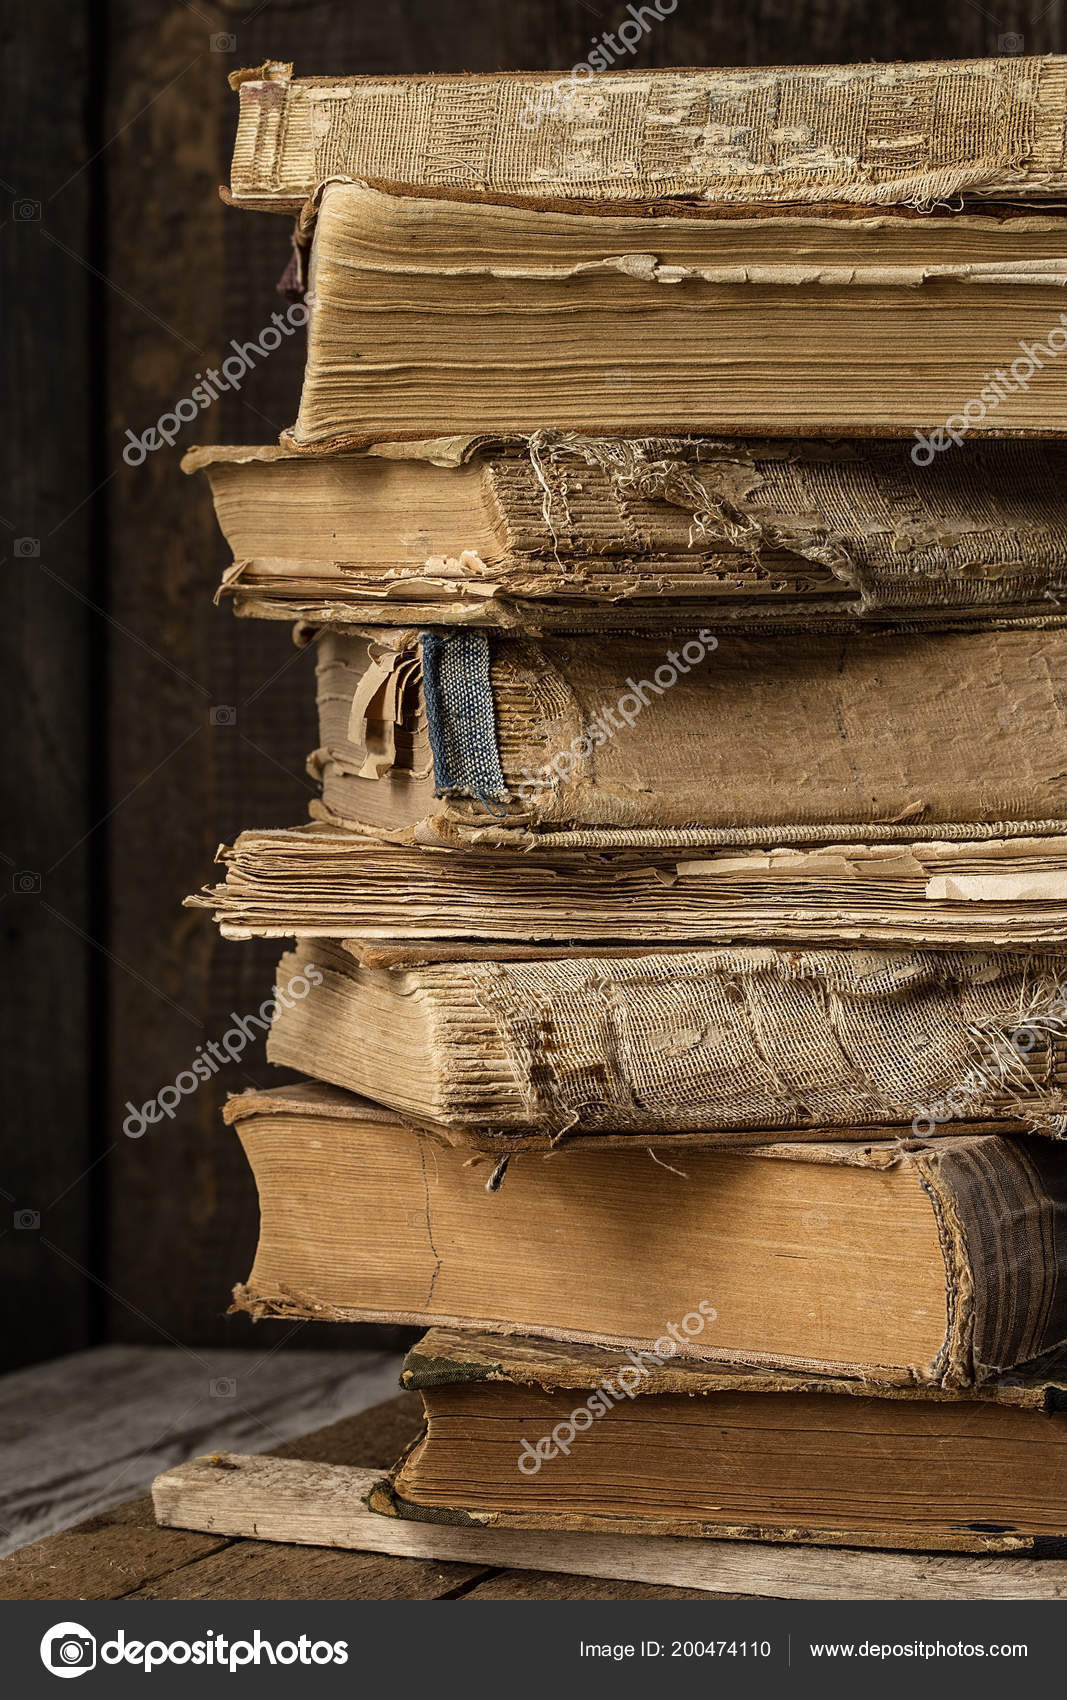 Old Vintage Books Wooden Desk Pile Antique Yellowed Stock Photo